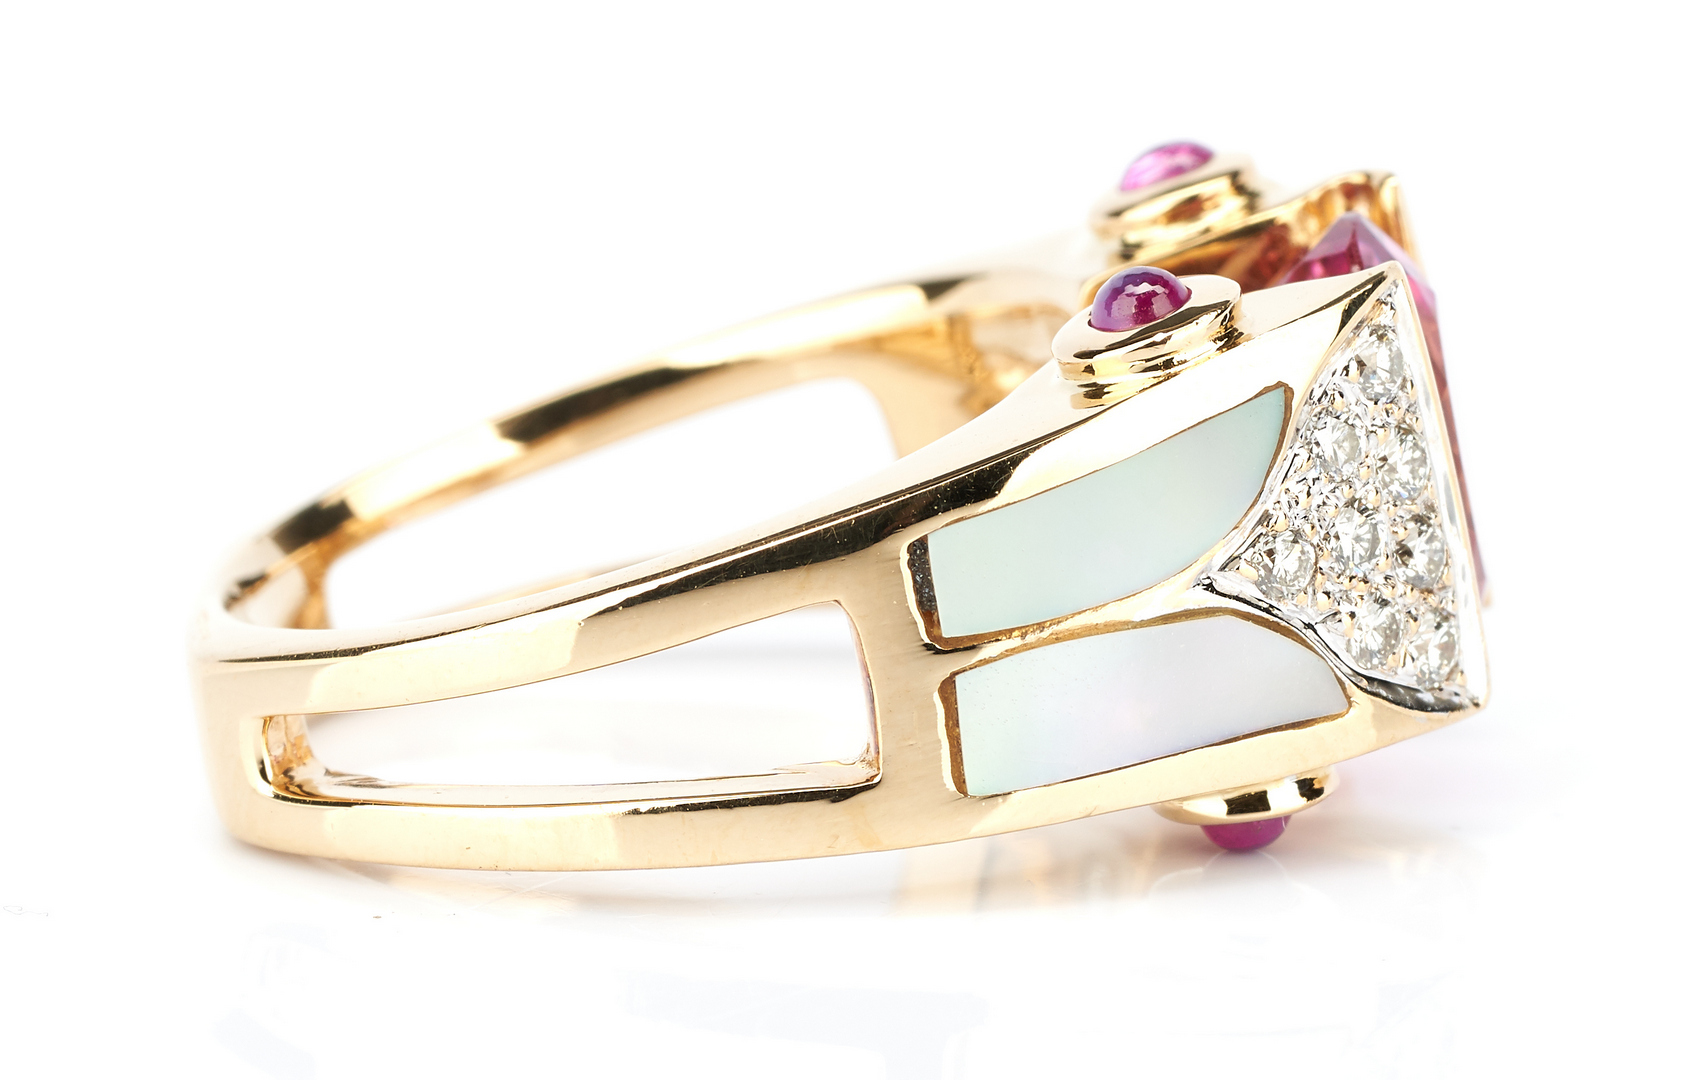 Lot 445: Ladies 18K Gold Diamond & Mother of Pearl Ring